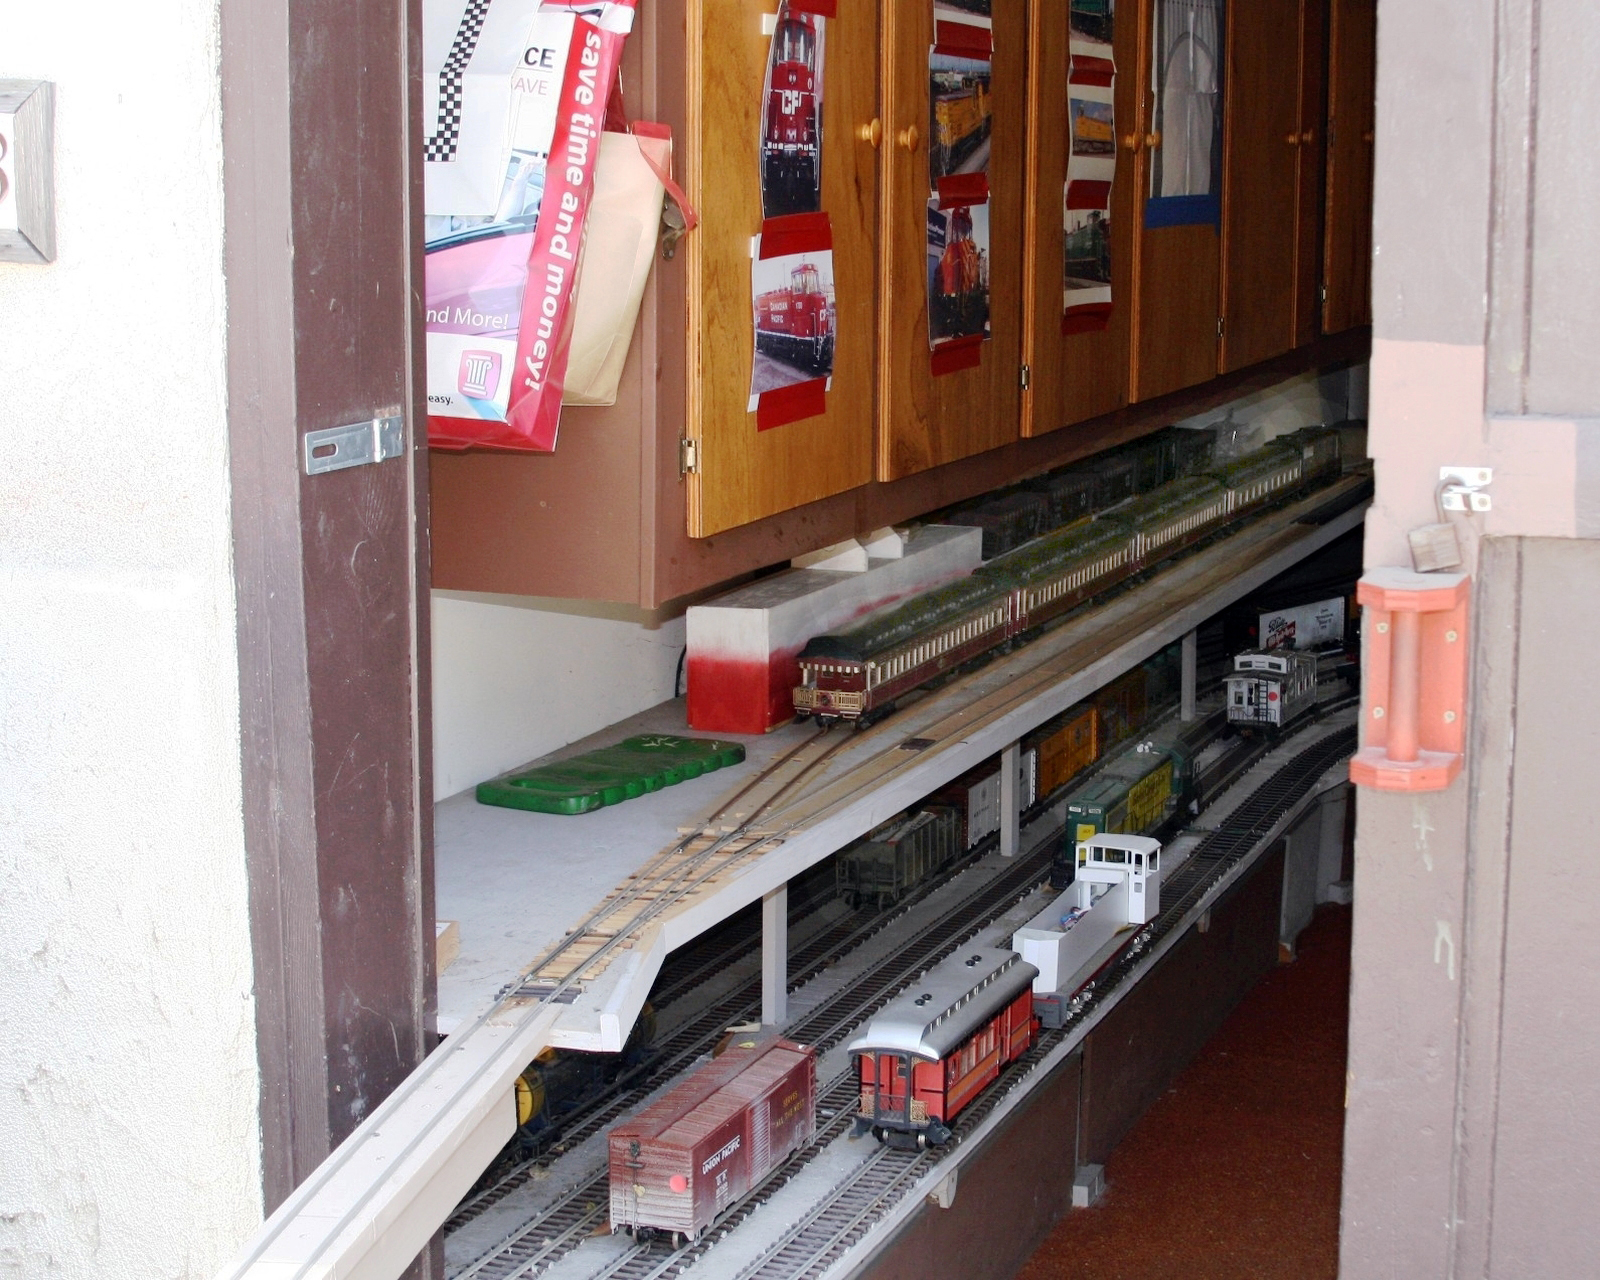 Seidensticker Track runs through a convenient workshop and storage shed for the trains